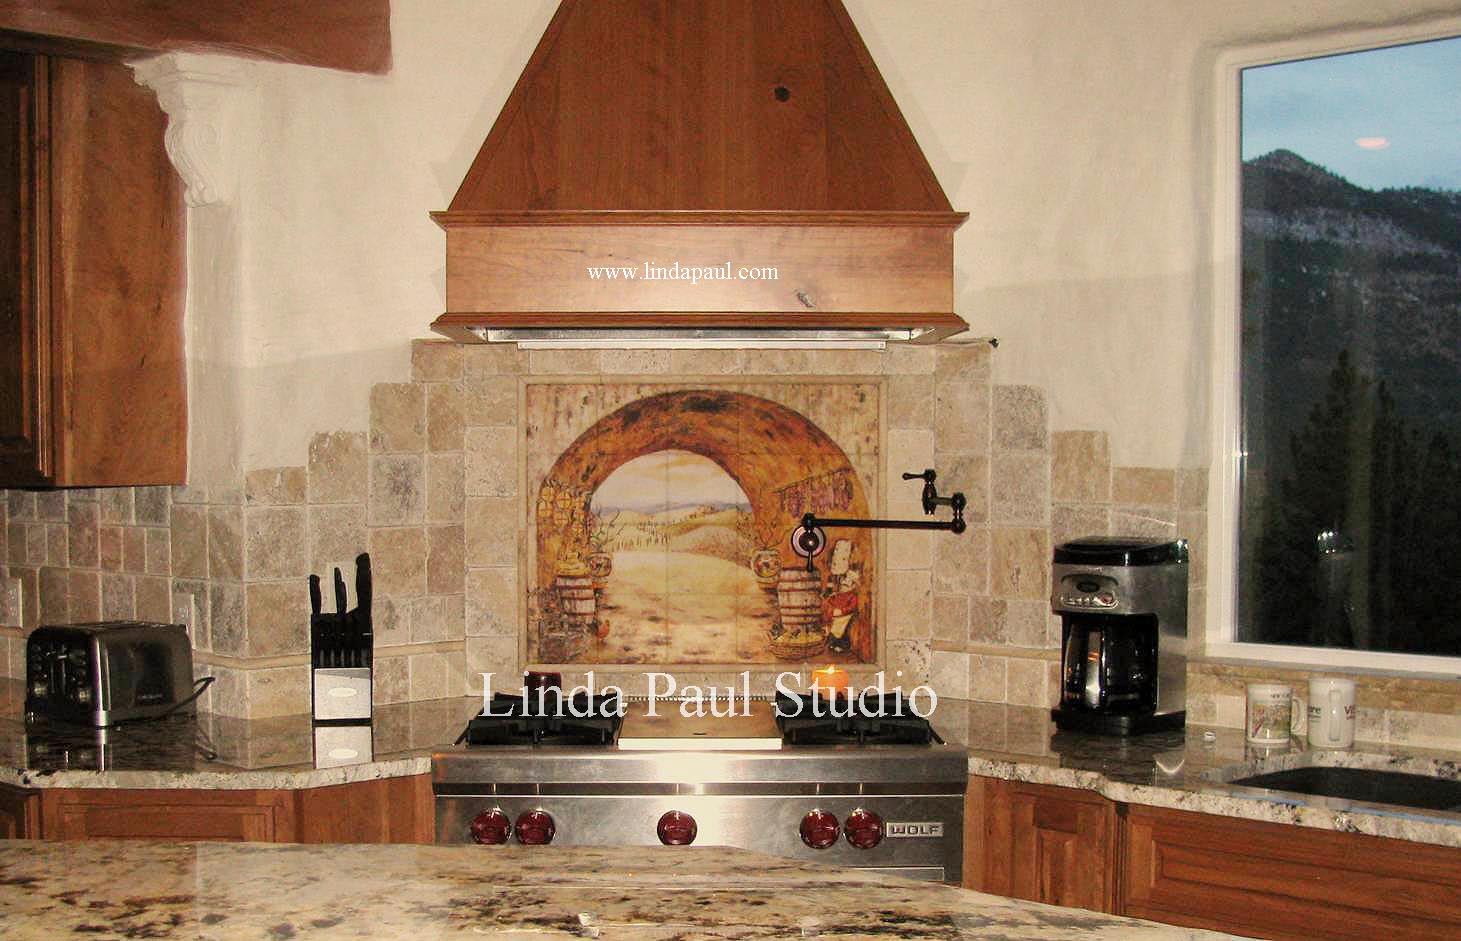 Everything Tuscany tile mural backsplash backsplash tiles for kitchen Everything Tuscany Tile Kitchen Backsplash Mural by artist Linda Paul